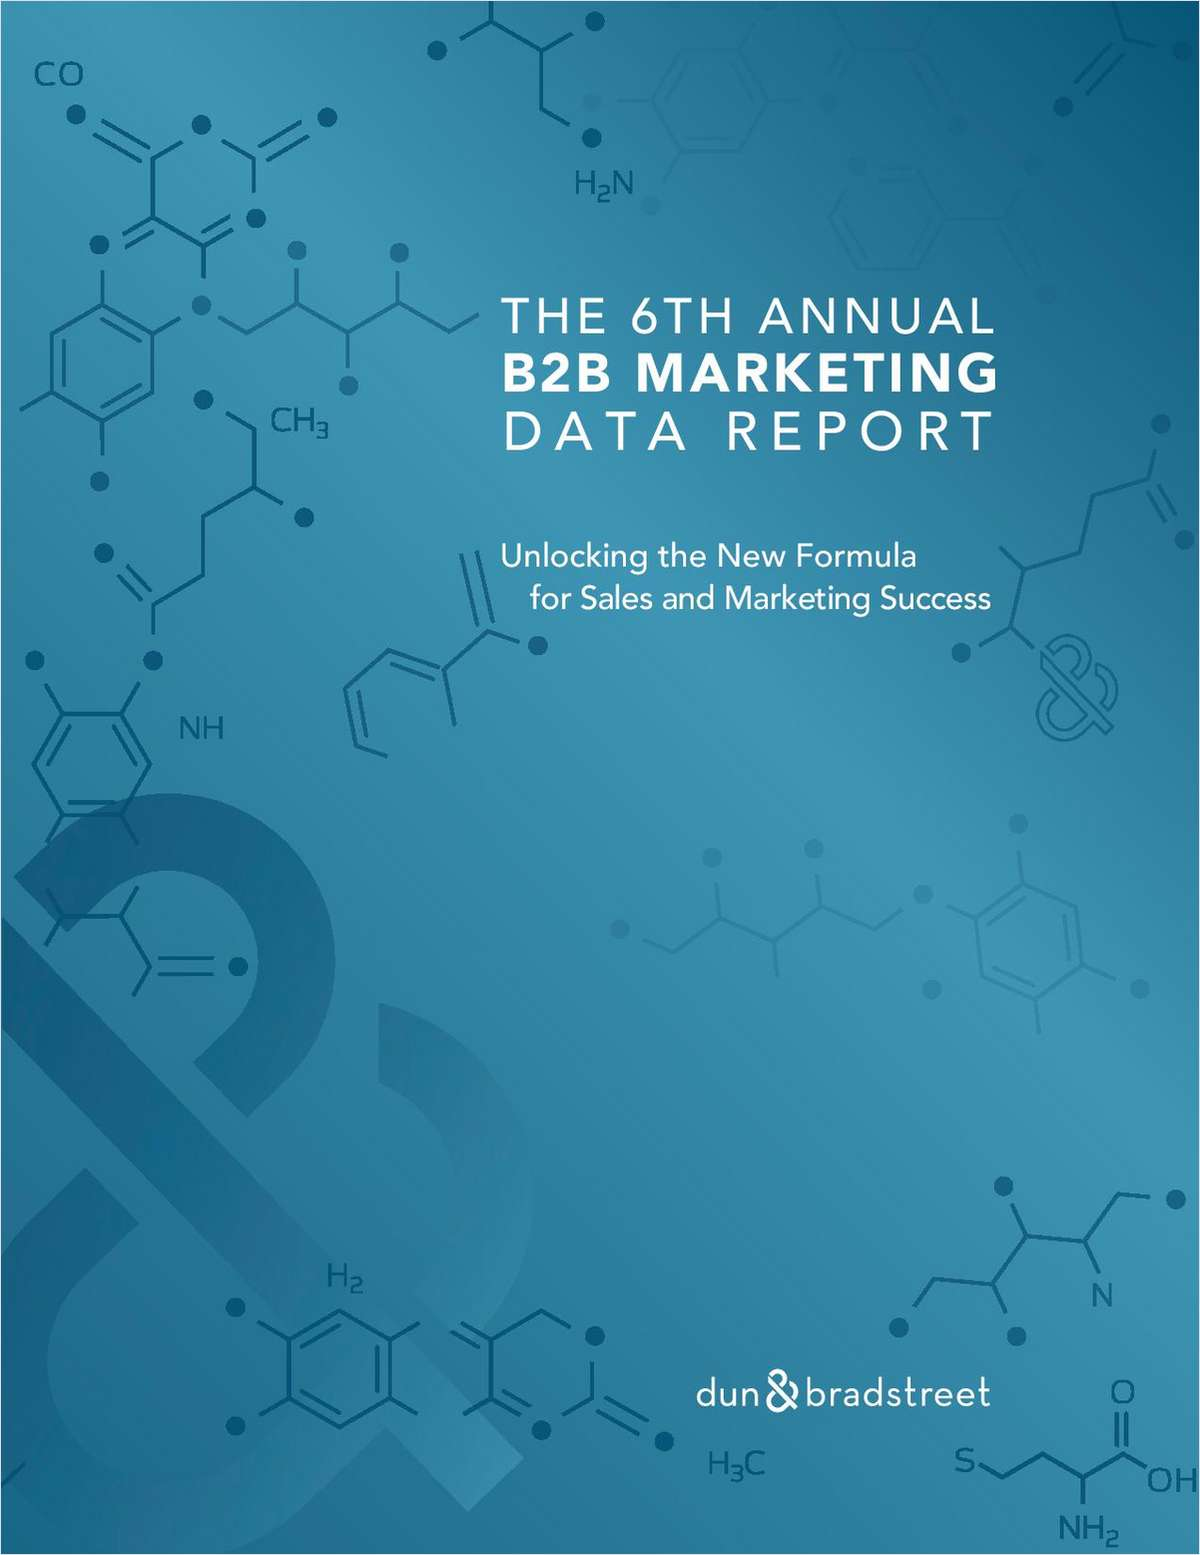 The 6th Annual B2B Marketing Data Report